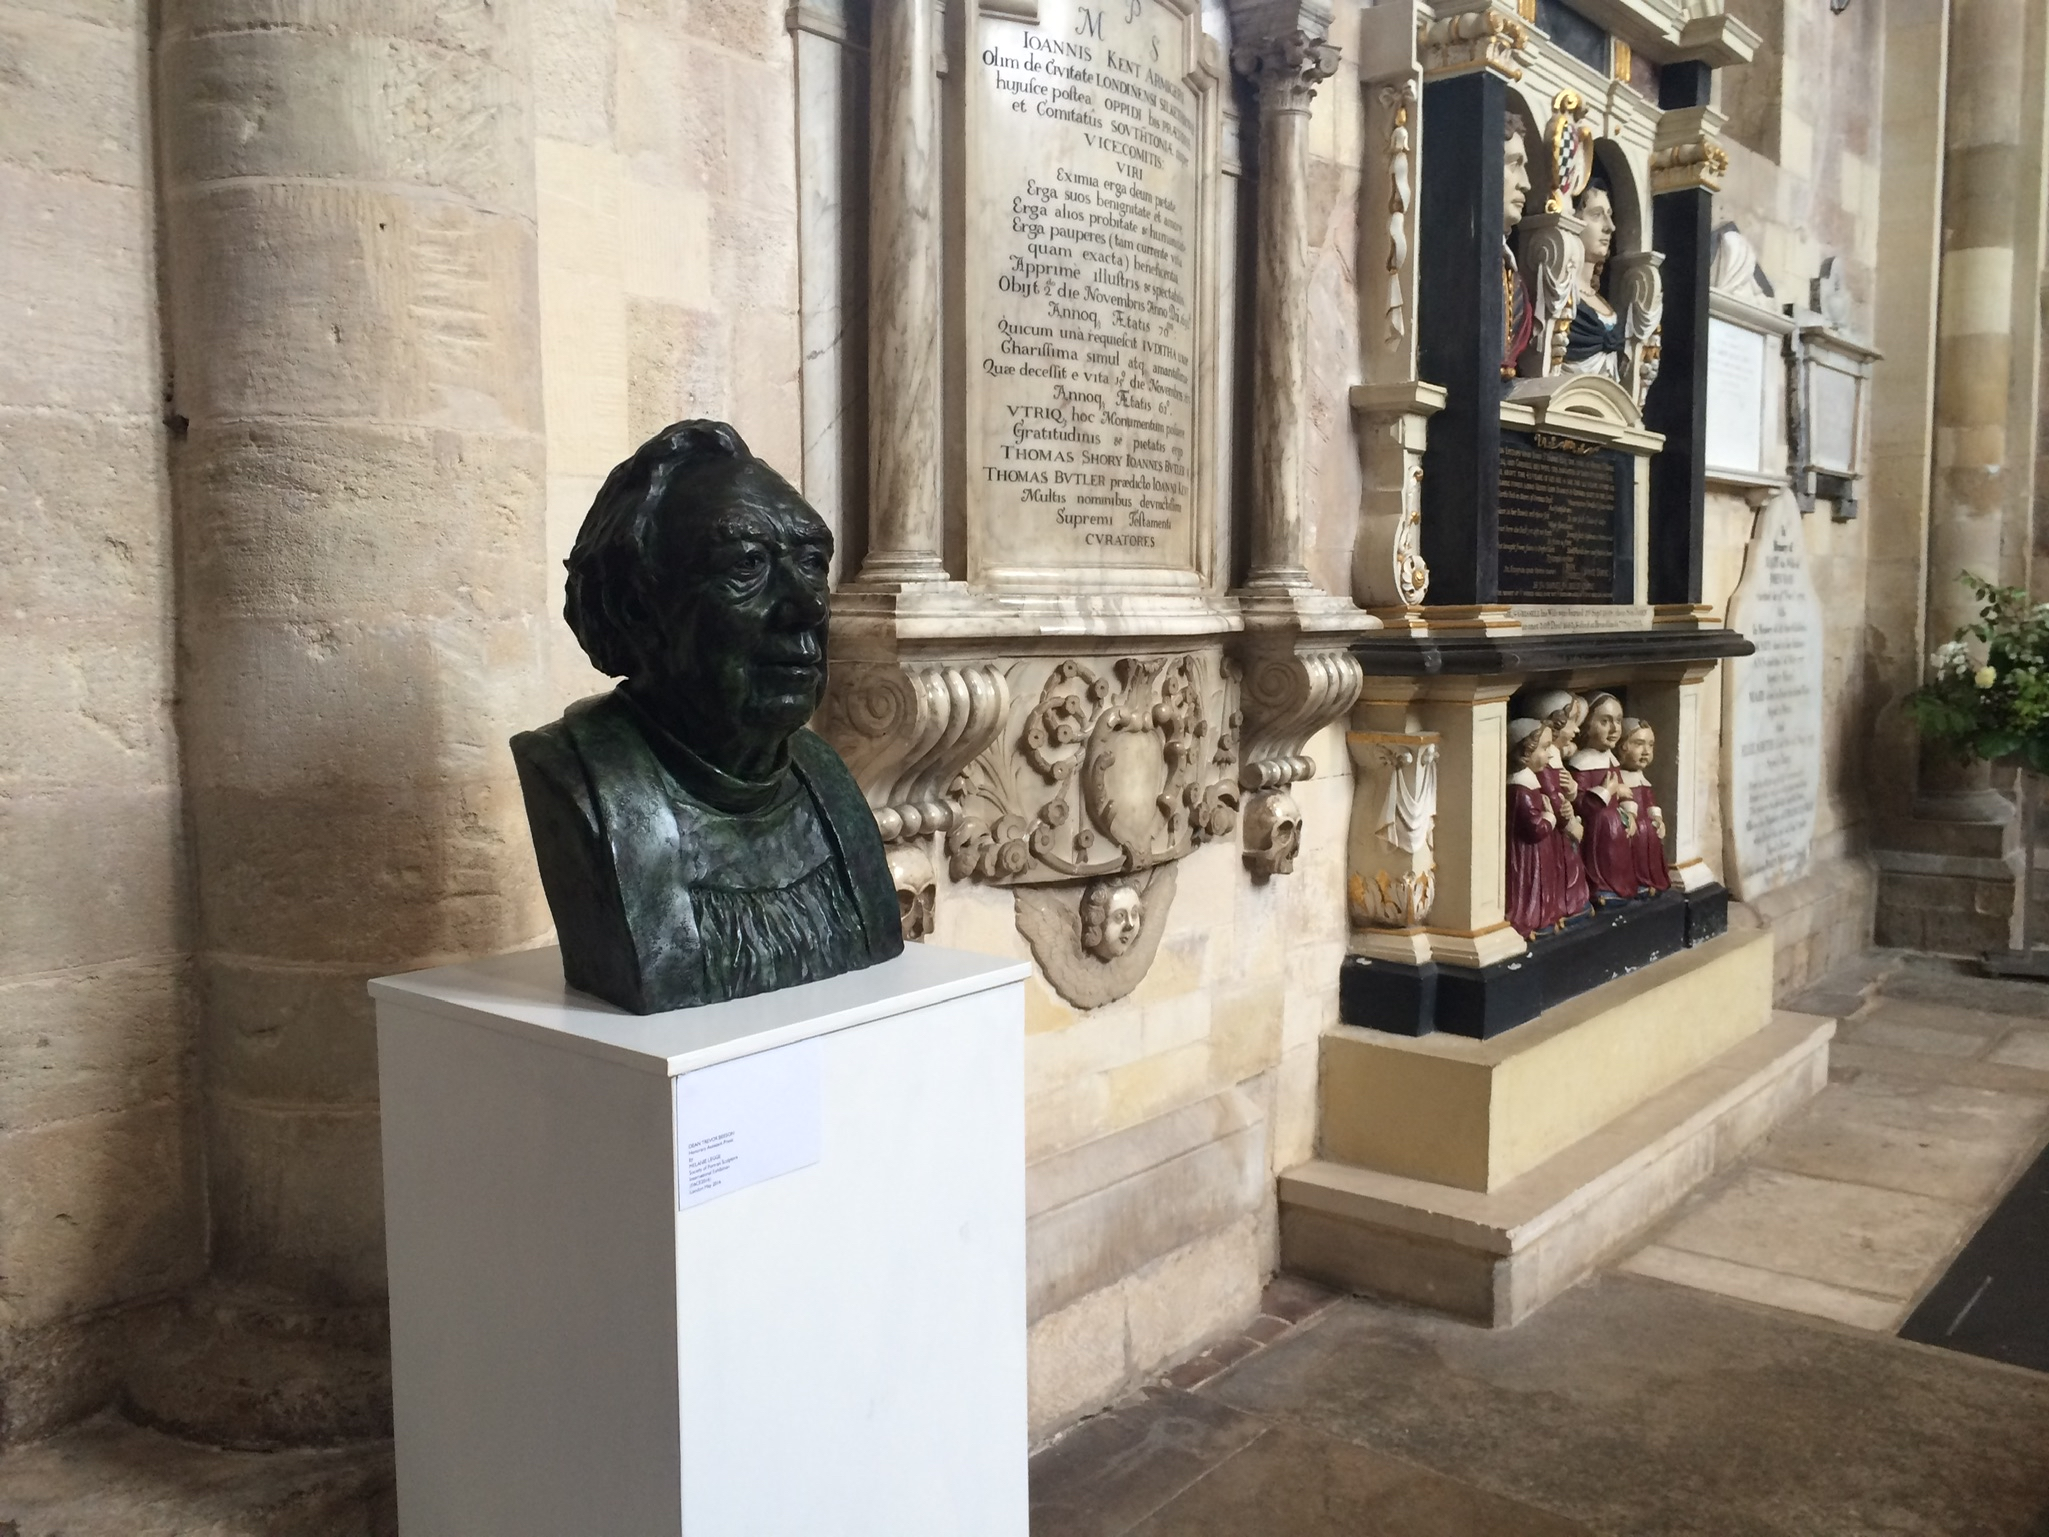 Trevor Beeson, former Dean of Winchester Cathedral. By Melanie Legge. This was selected by the Society of Portrait Sculptors for their exhibition, FACE2016 and is here exhibited at Romsey Abbey.